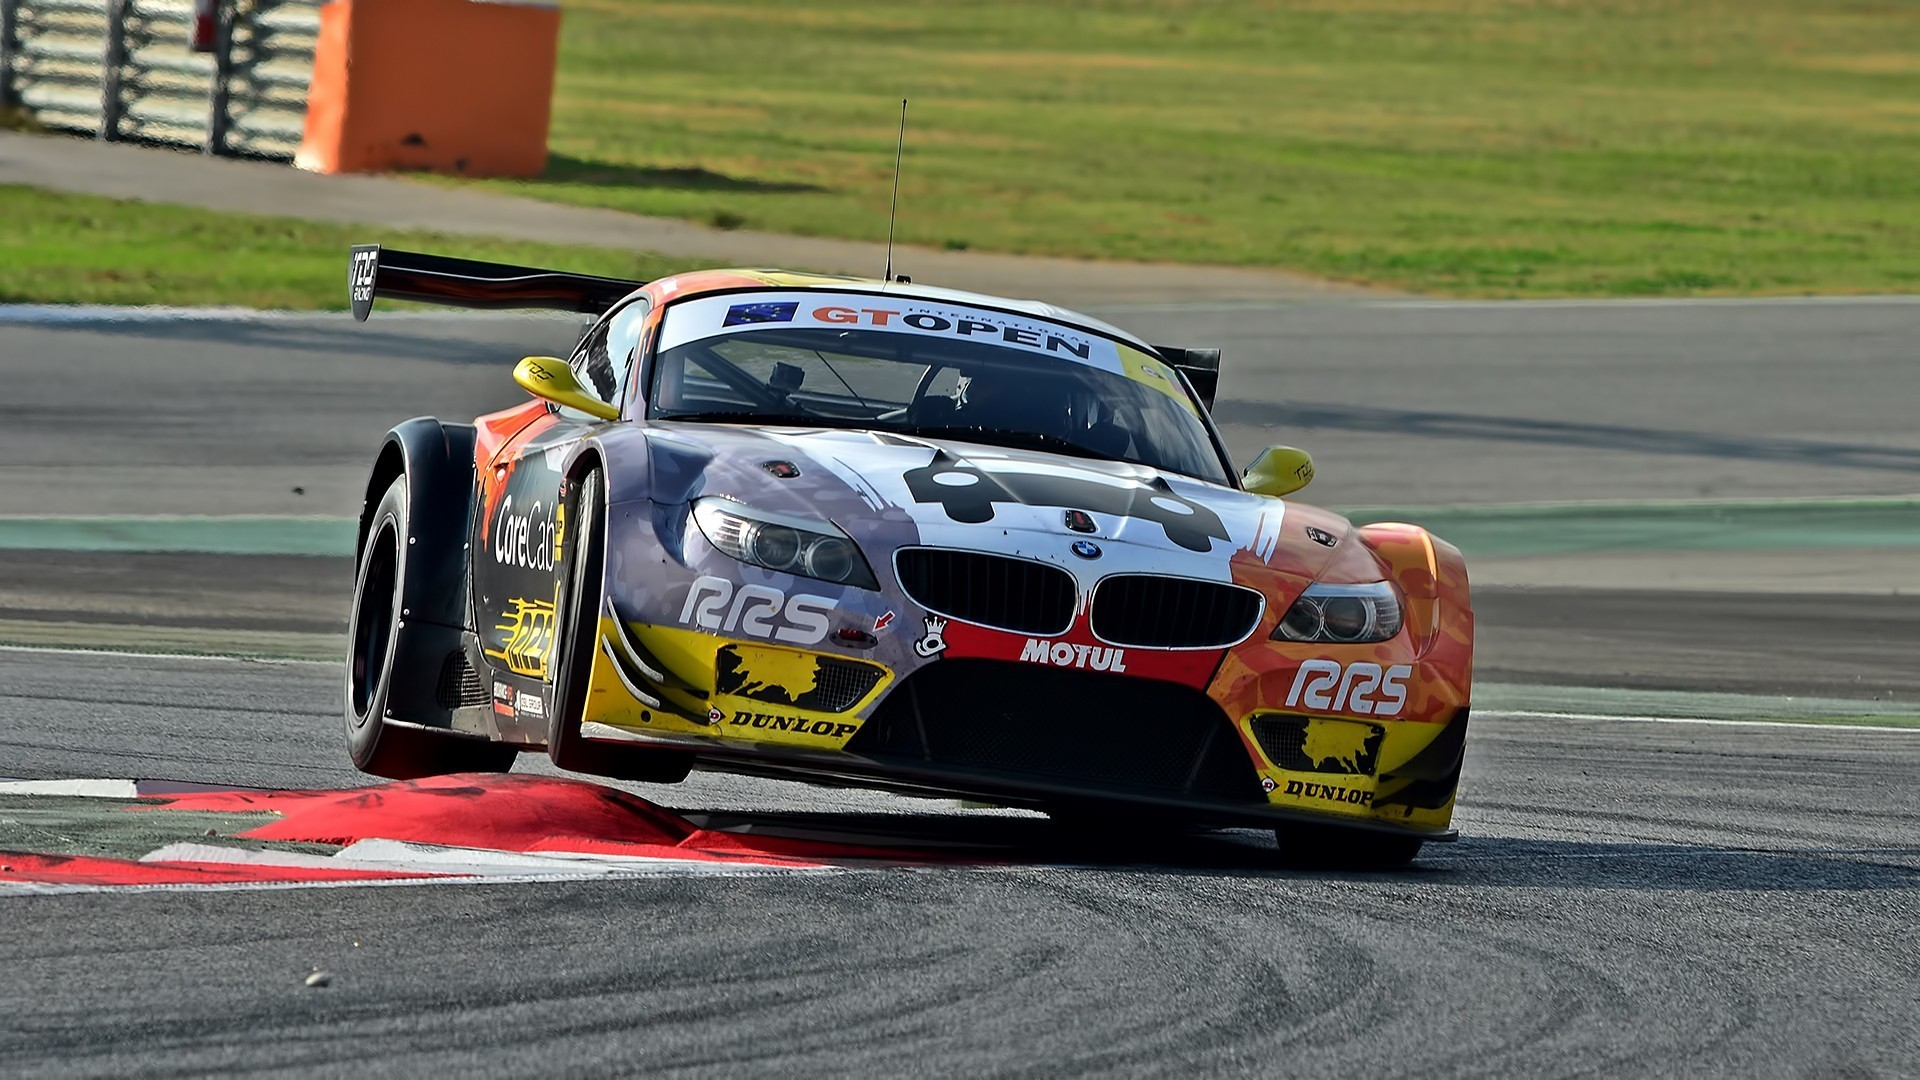 1920x1080  bmw z4 gt3 racing car race cars wallpaper and background JPG 451  kB